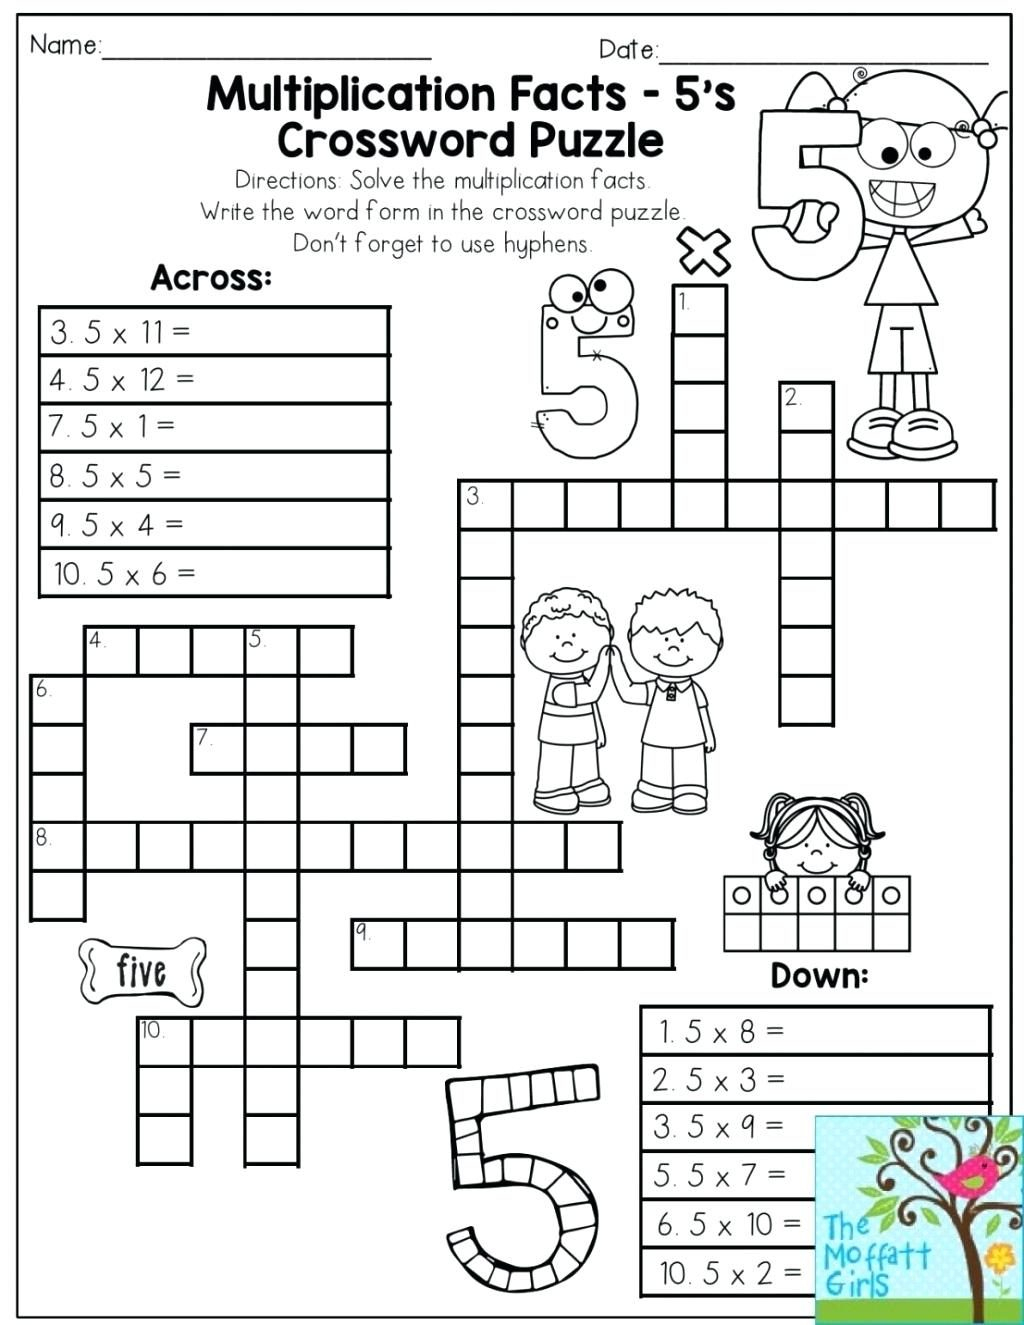 Printable Math Puzzles 5Th Grade Maths Ksheets Middle School Pdf Fun - Printable Math Puzzles For High School